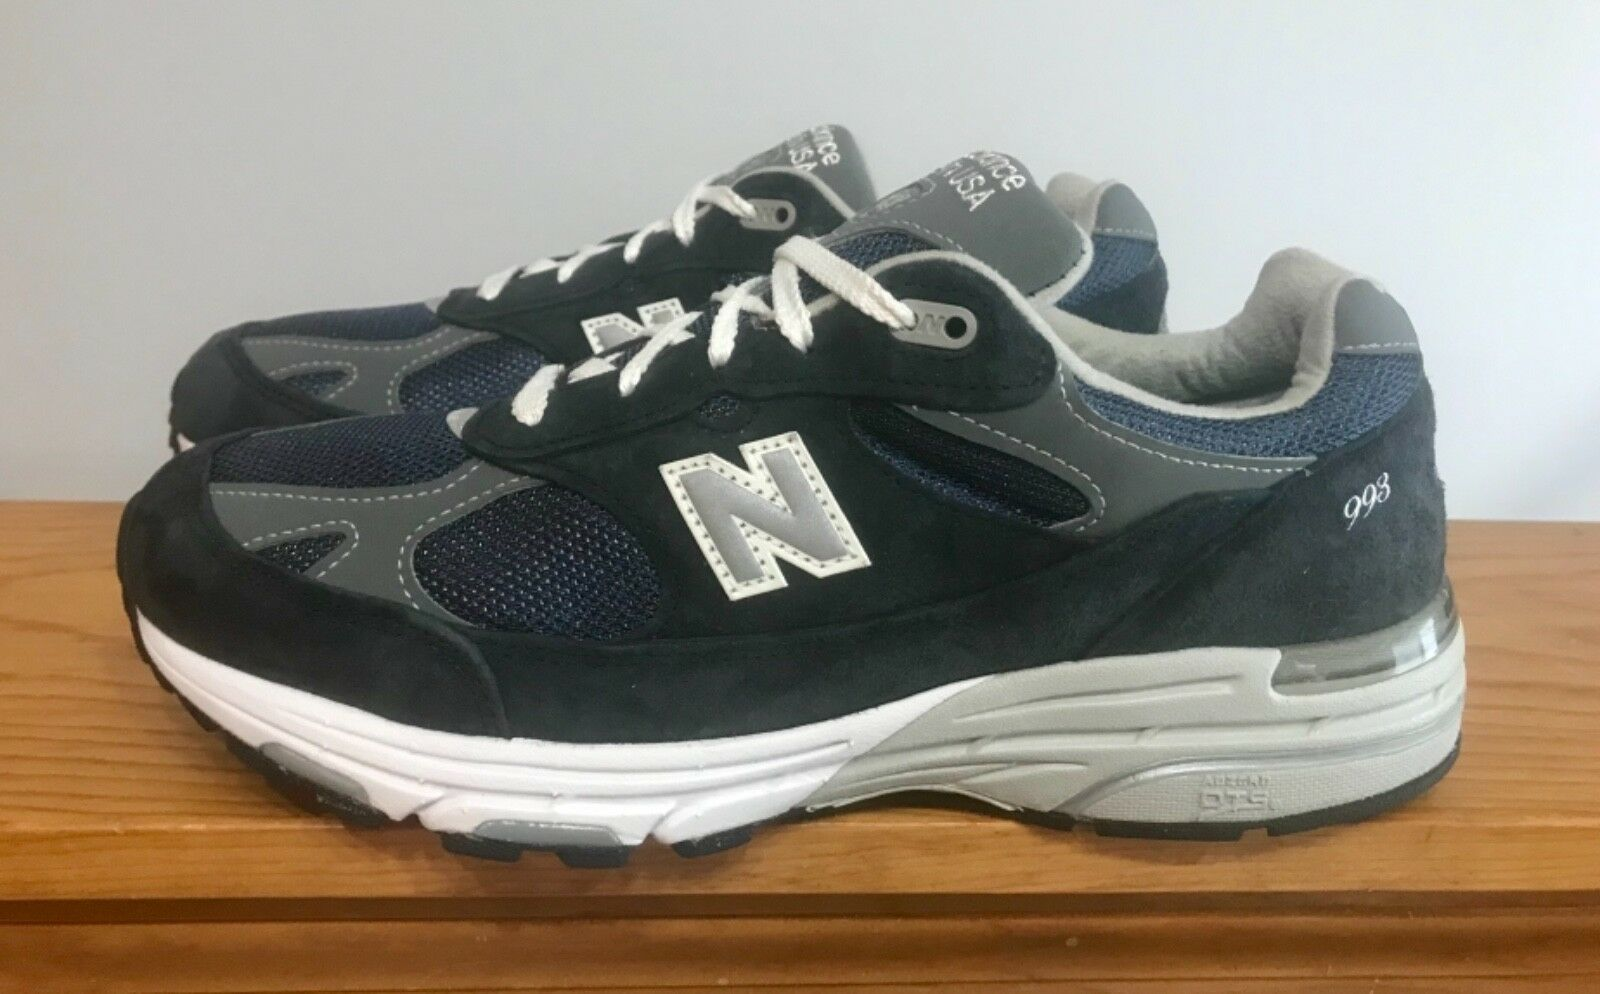 brand new 95312 4794d Details about NEW BALANCE 993 USA WALKING ATHLETIC Running ...